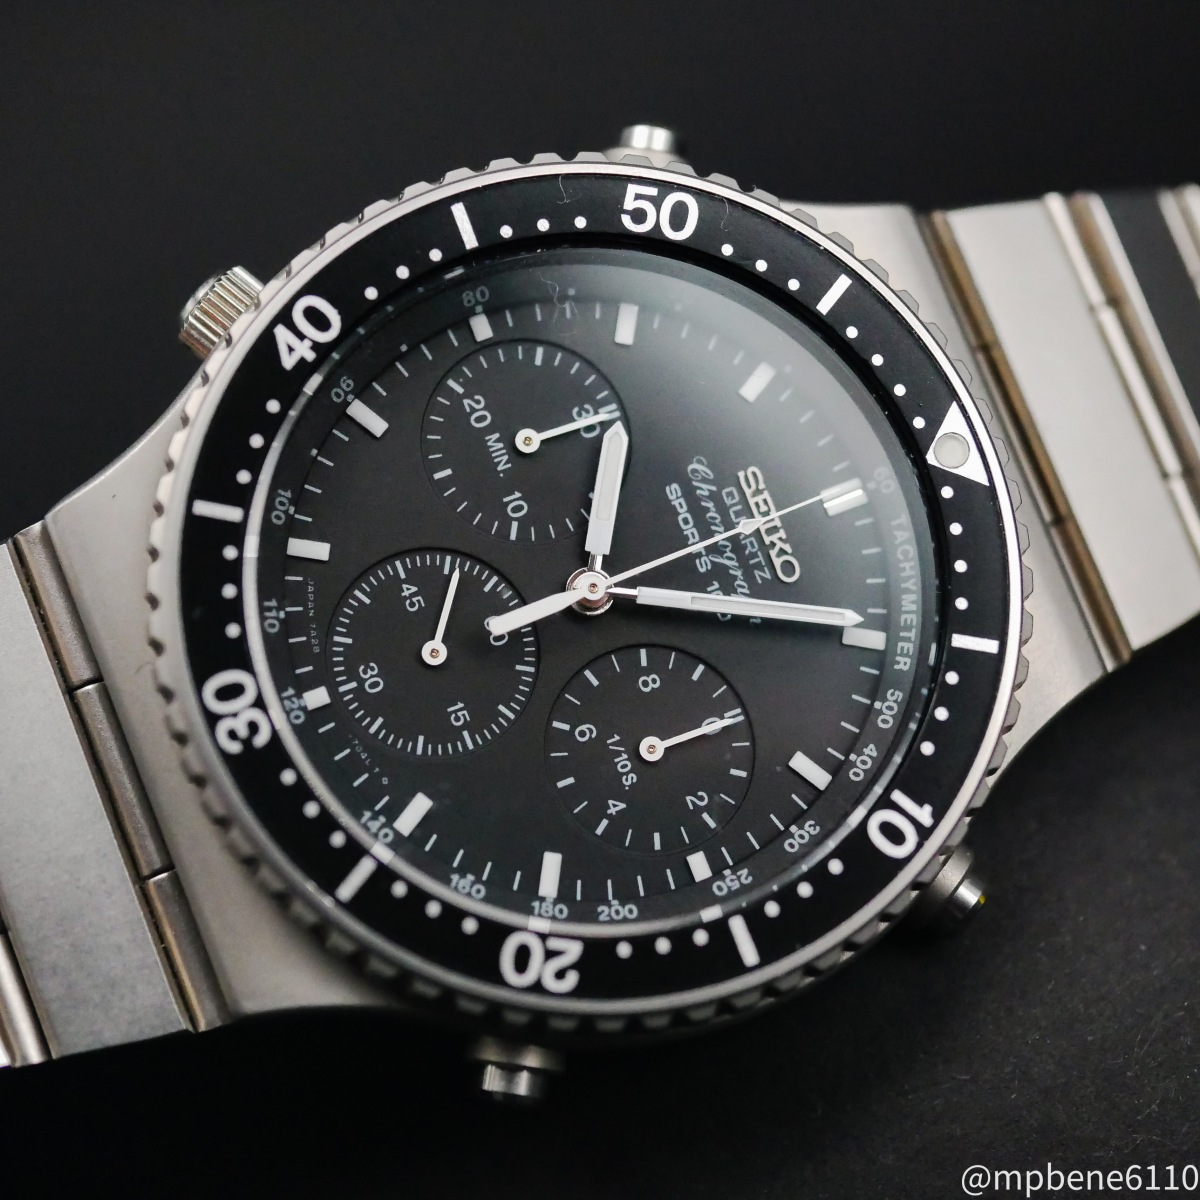 Seiko 7A28-7040 – Quartz Chronograph went analog